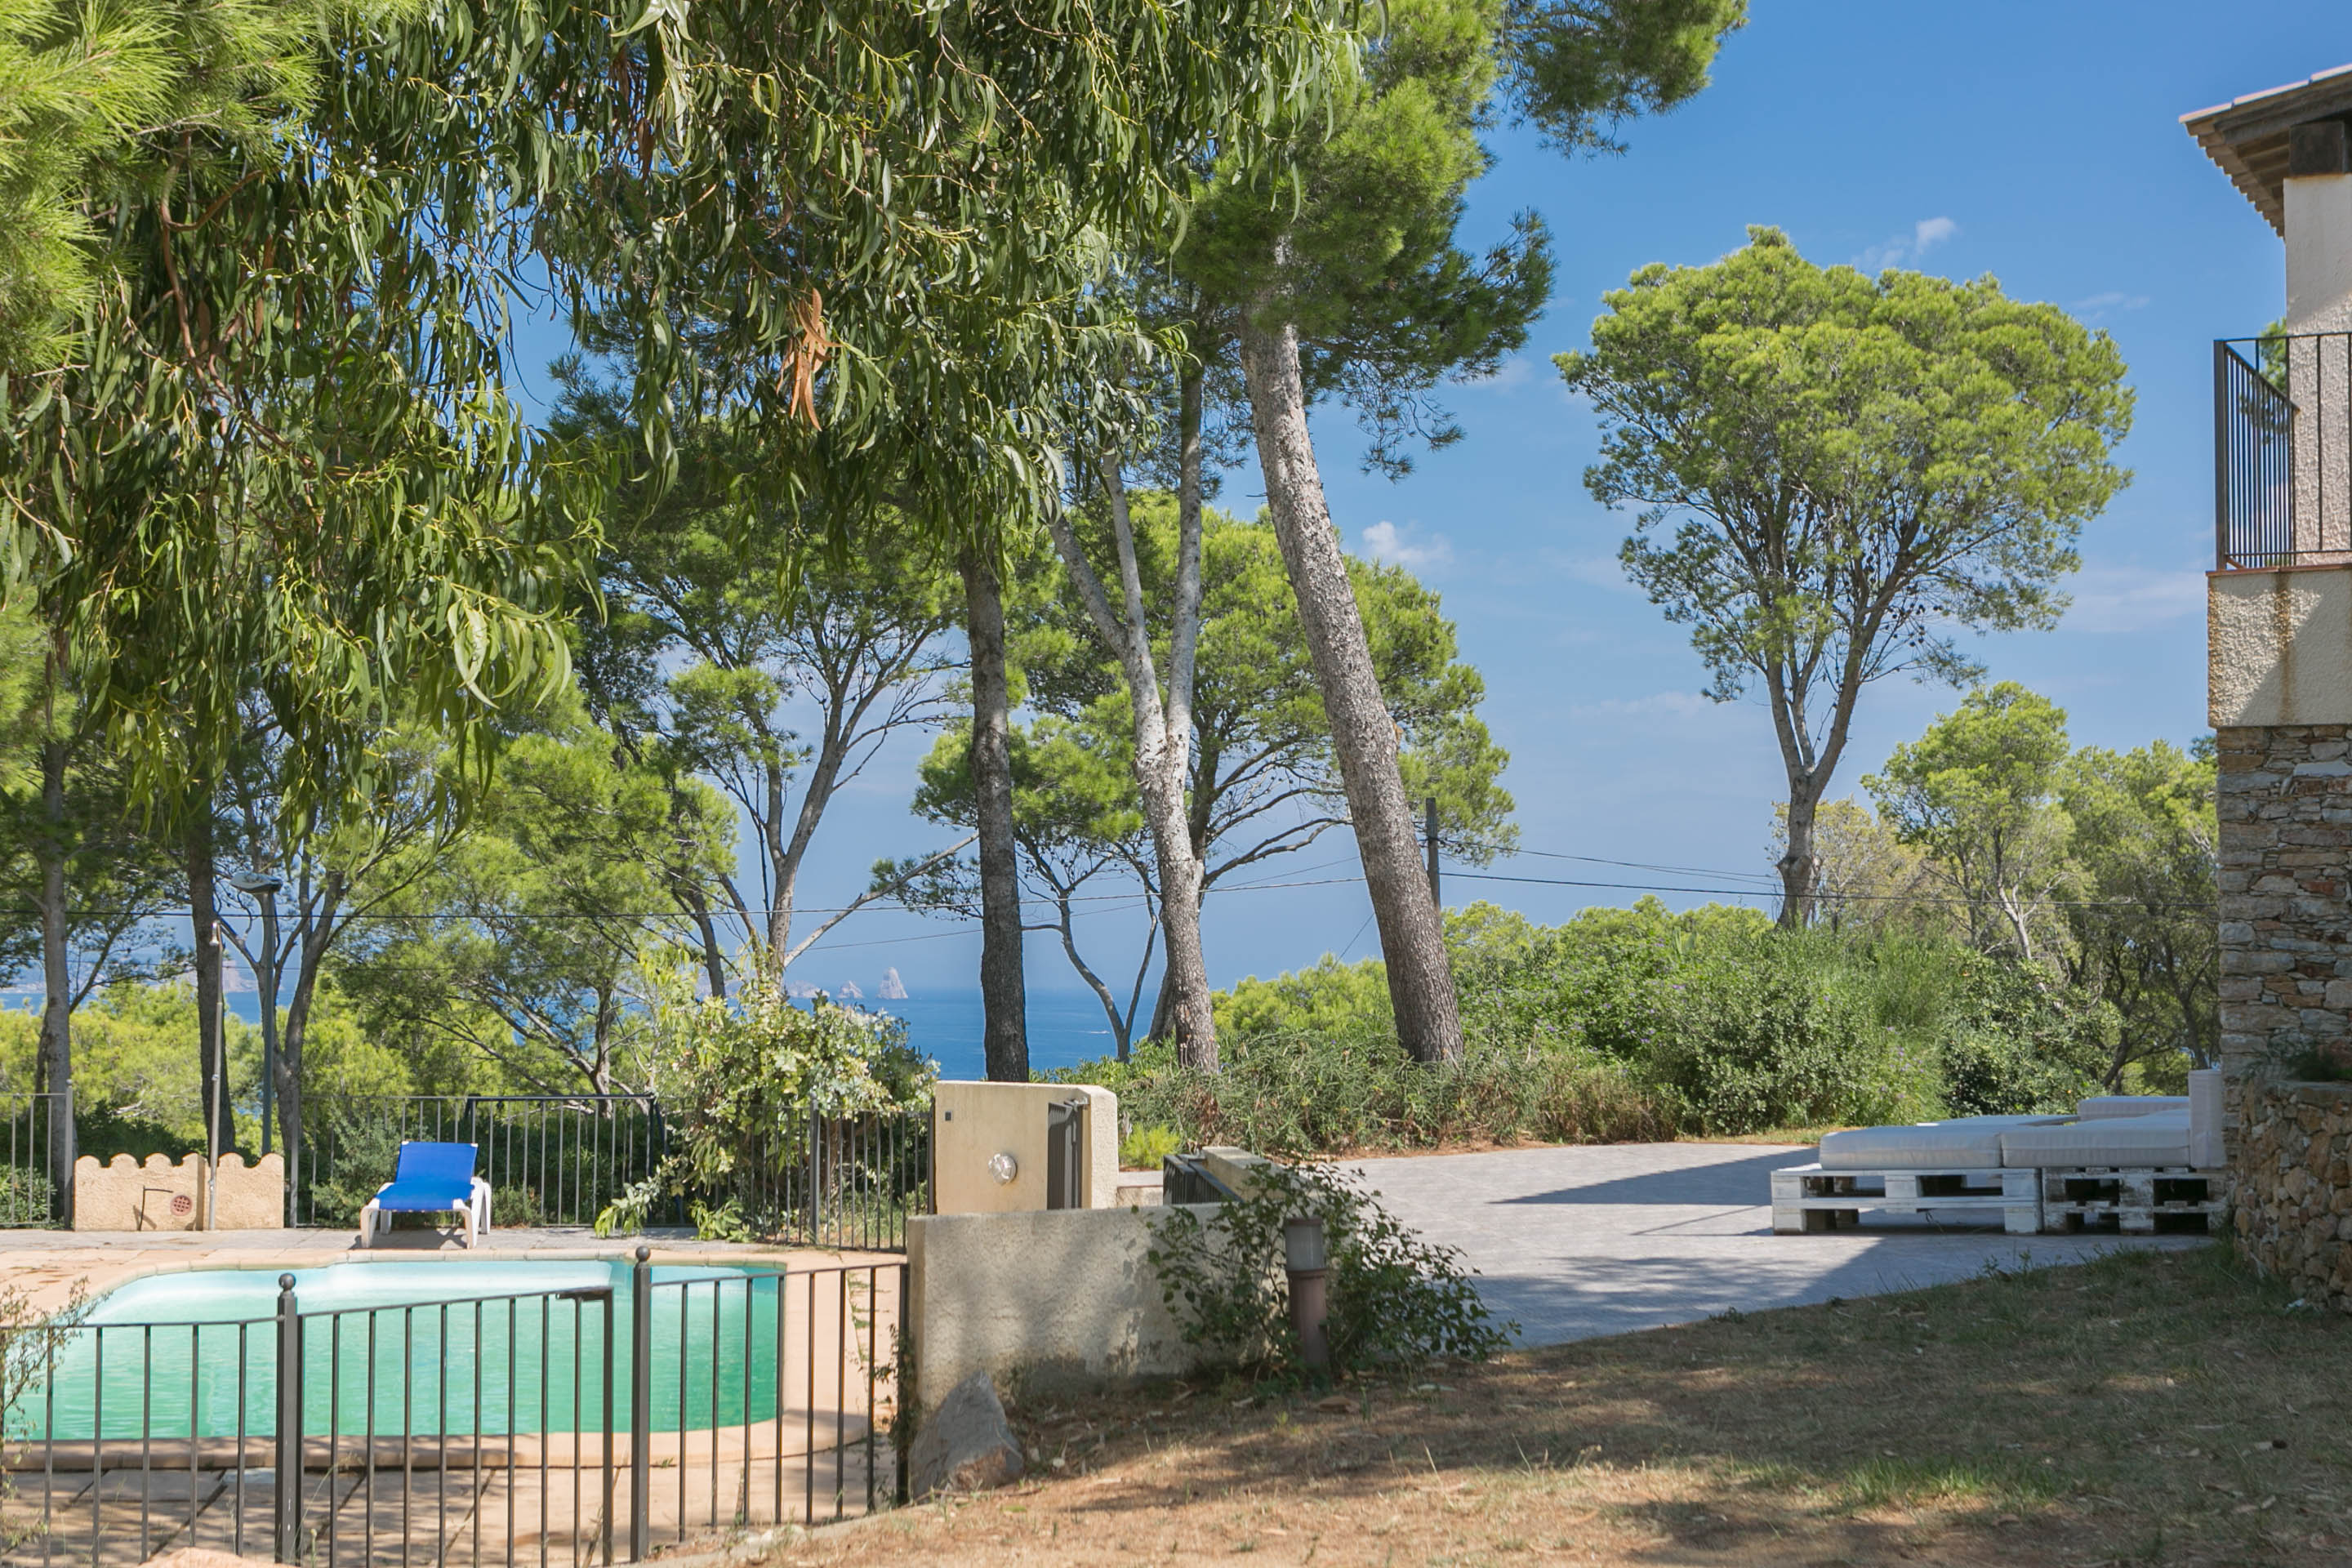 6 bedroom villa in Begur sea views close to the beach and  (Ref:H40) 2